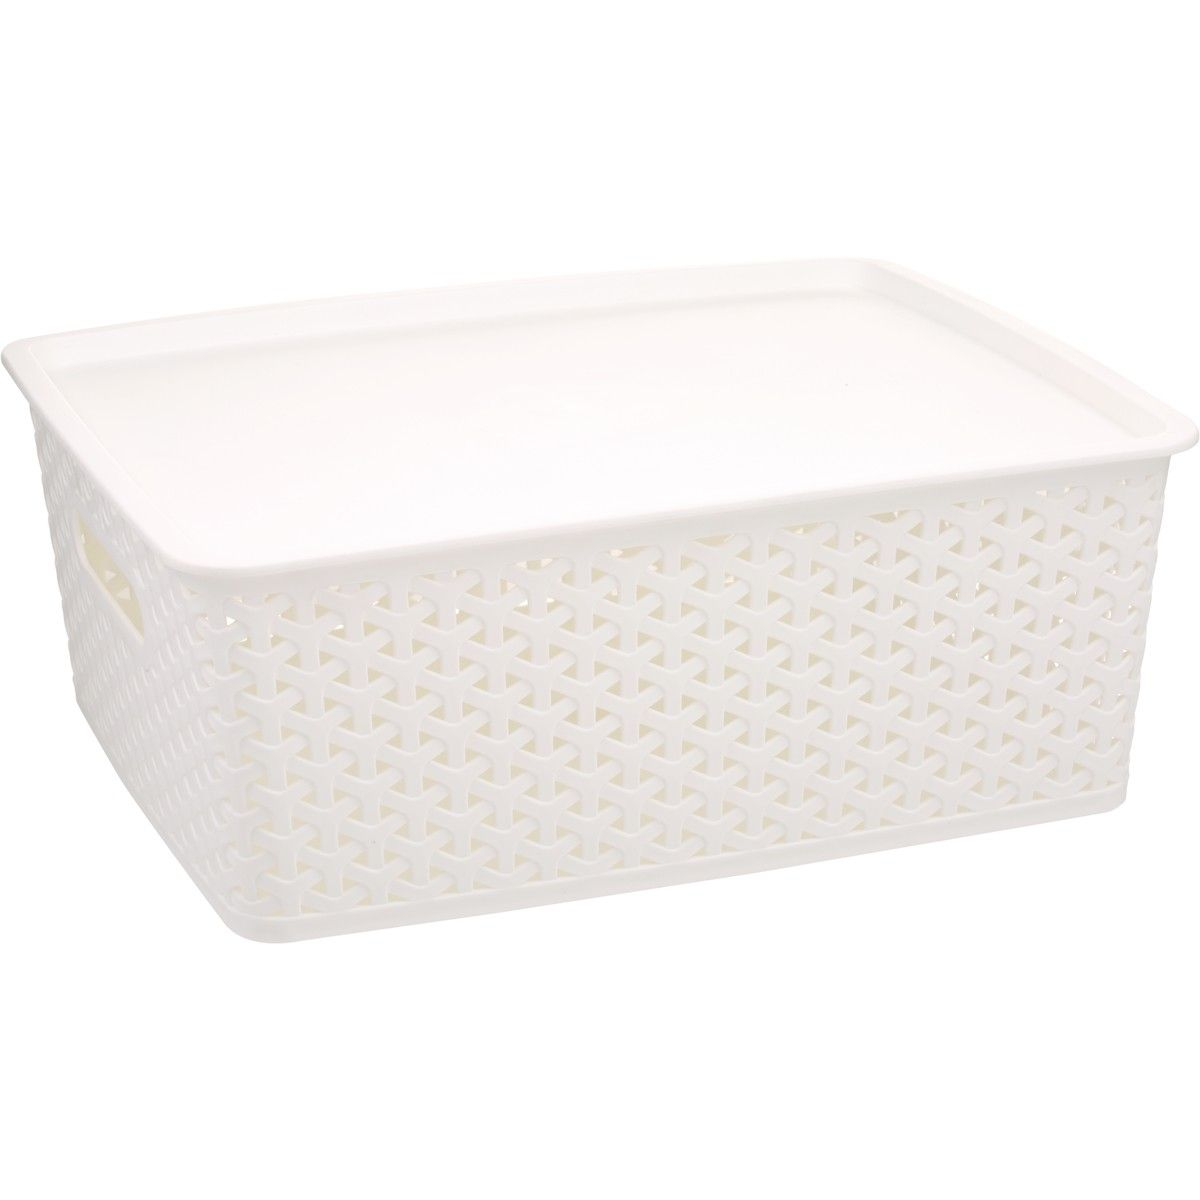 House Home 11l Plastic Rattan Storage Container White Plastic Container Storage Plastic Storage Drawers Storage Containers